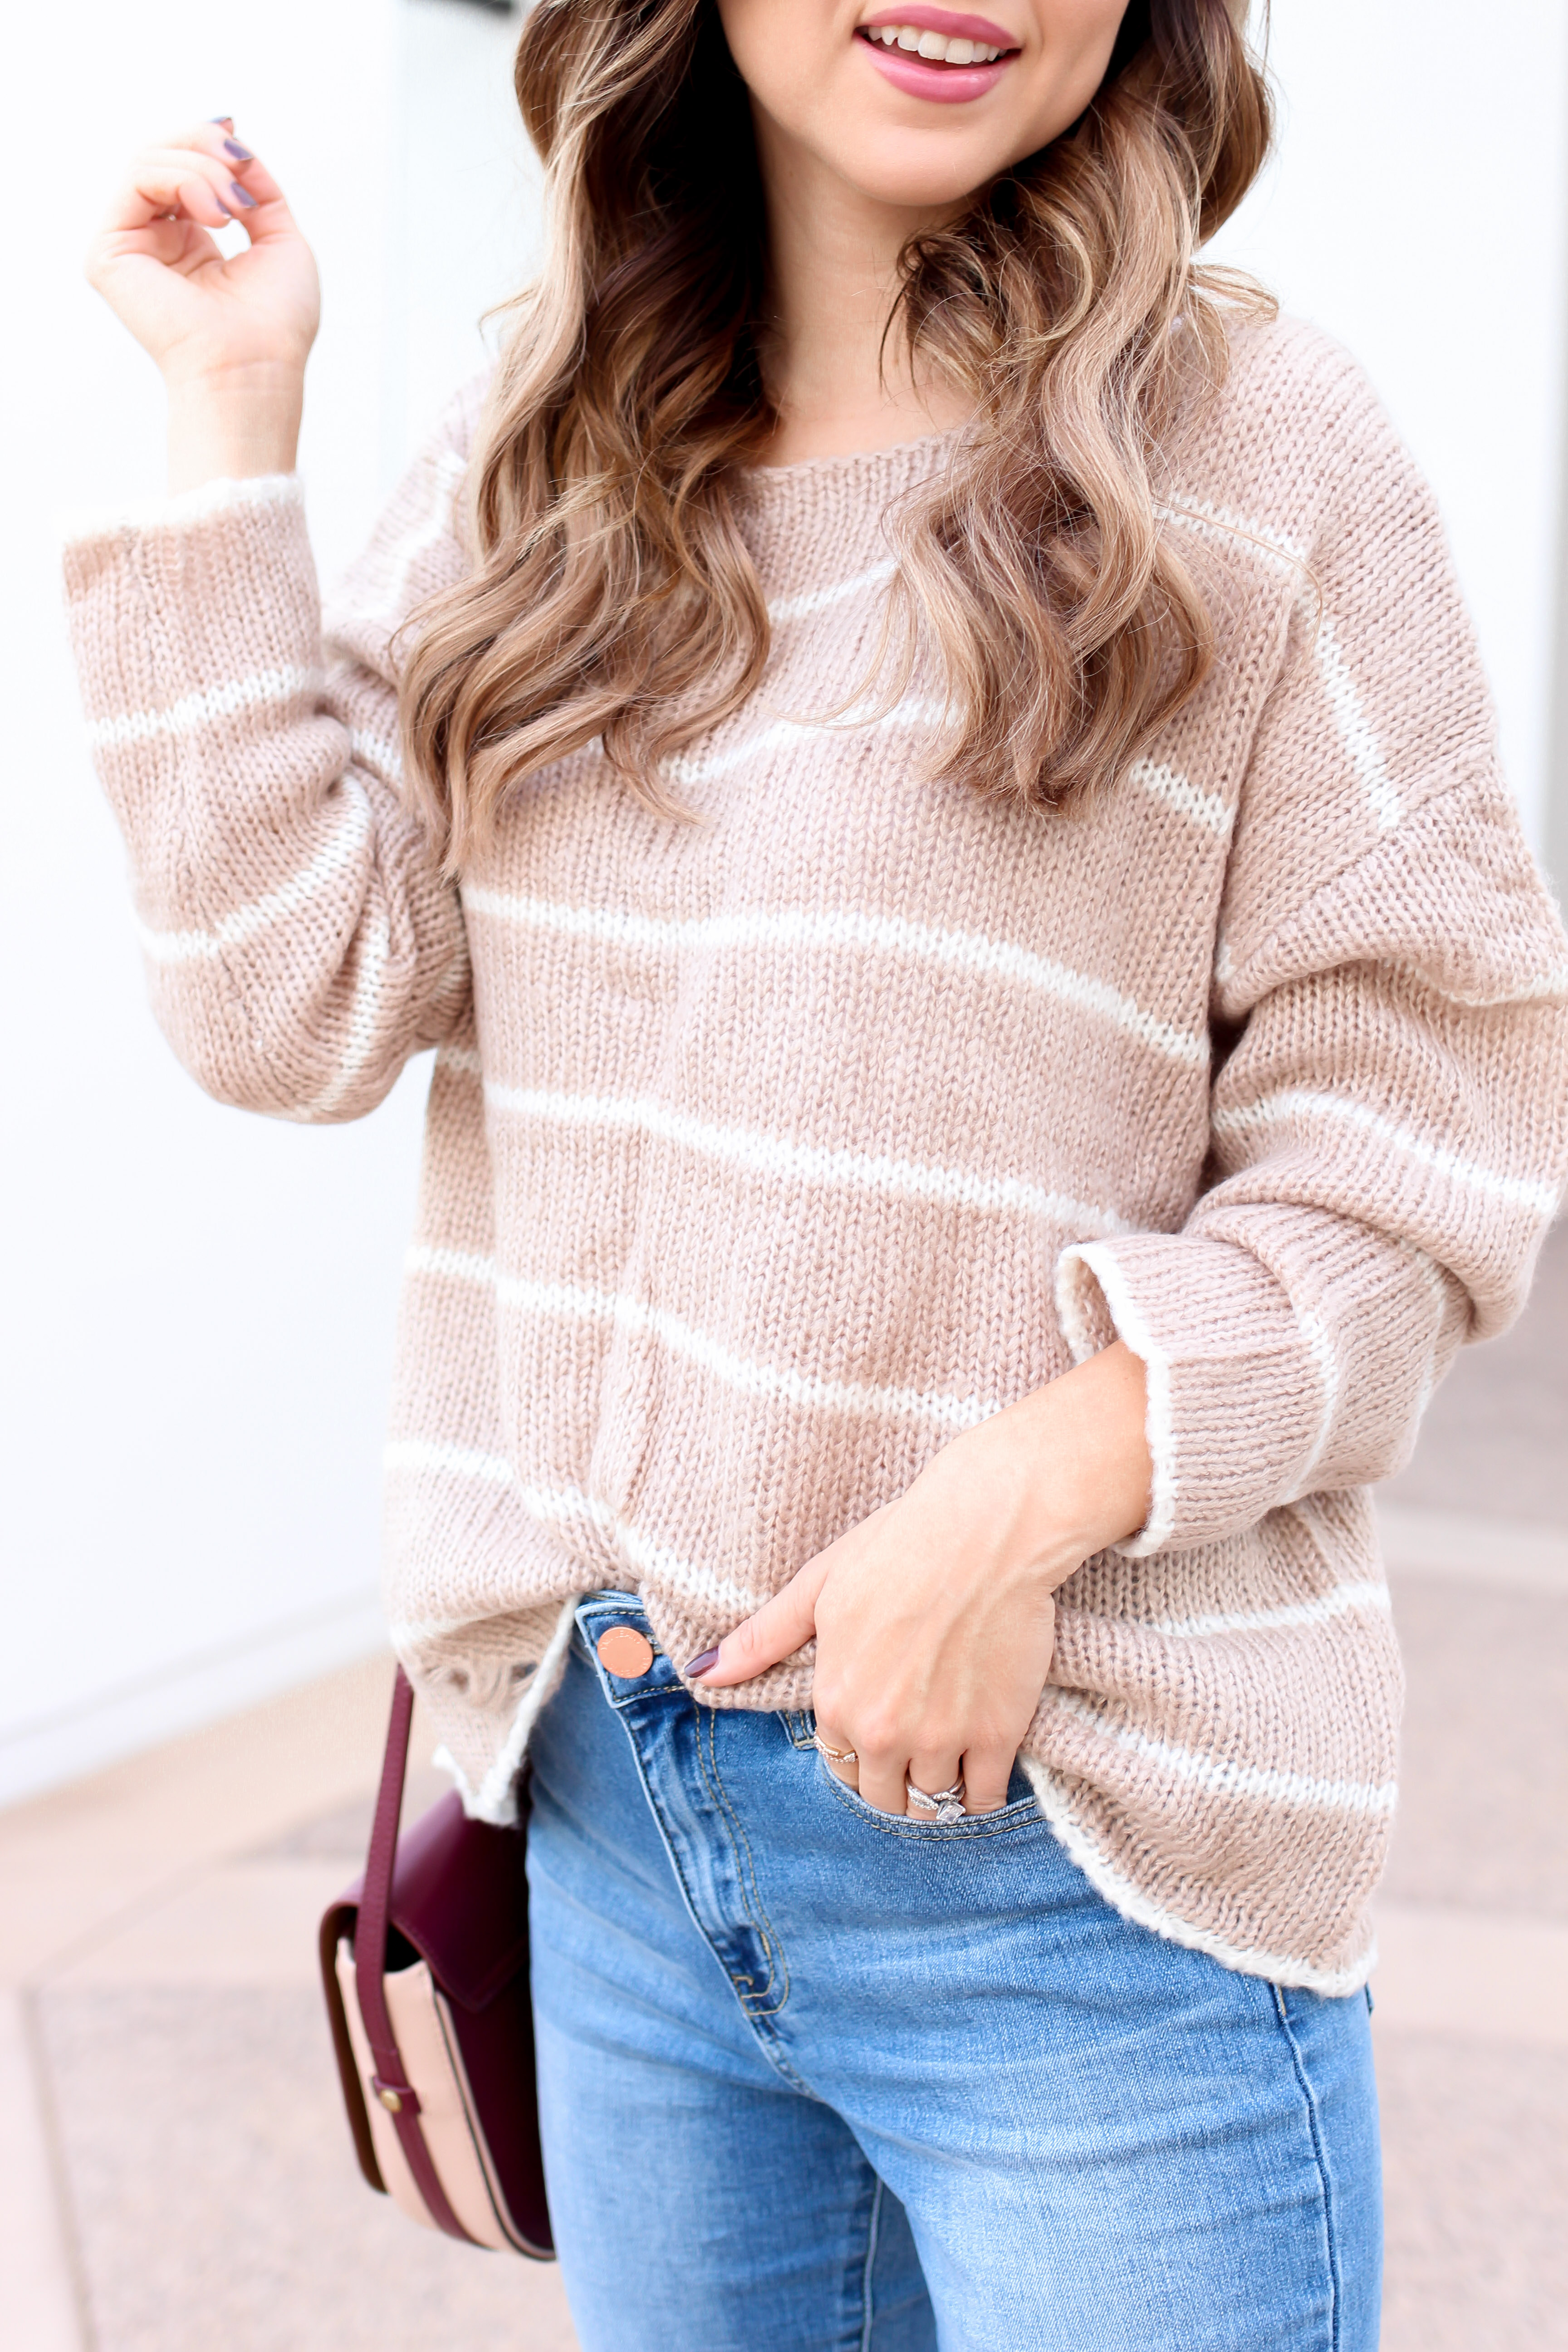 Sweater Weather - sweater trends - simply sutter - stage - fall look